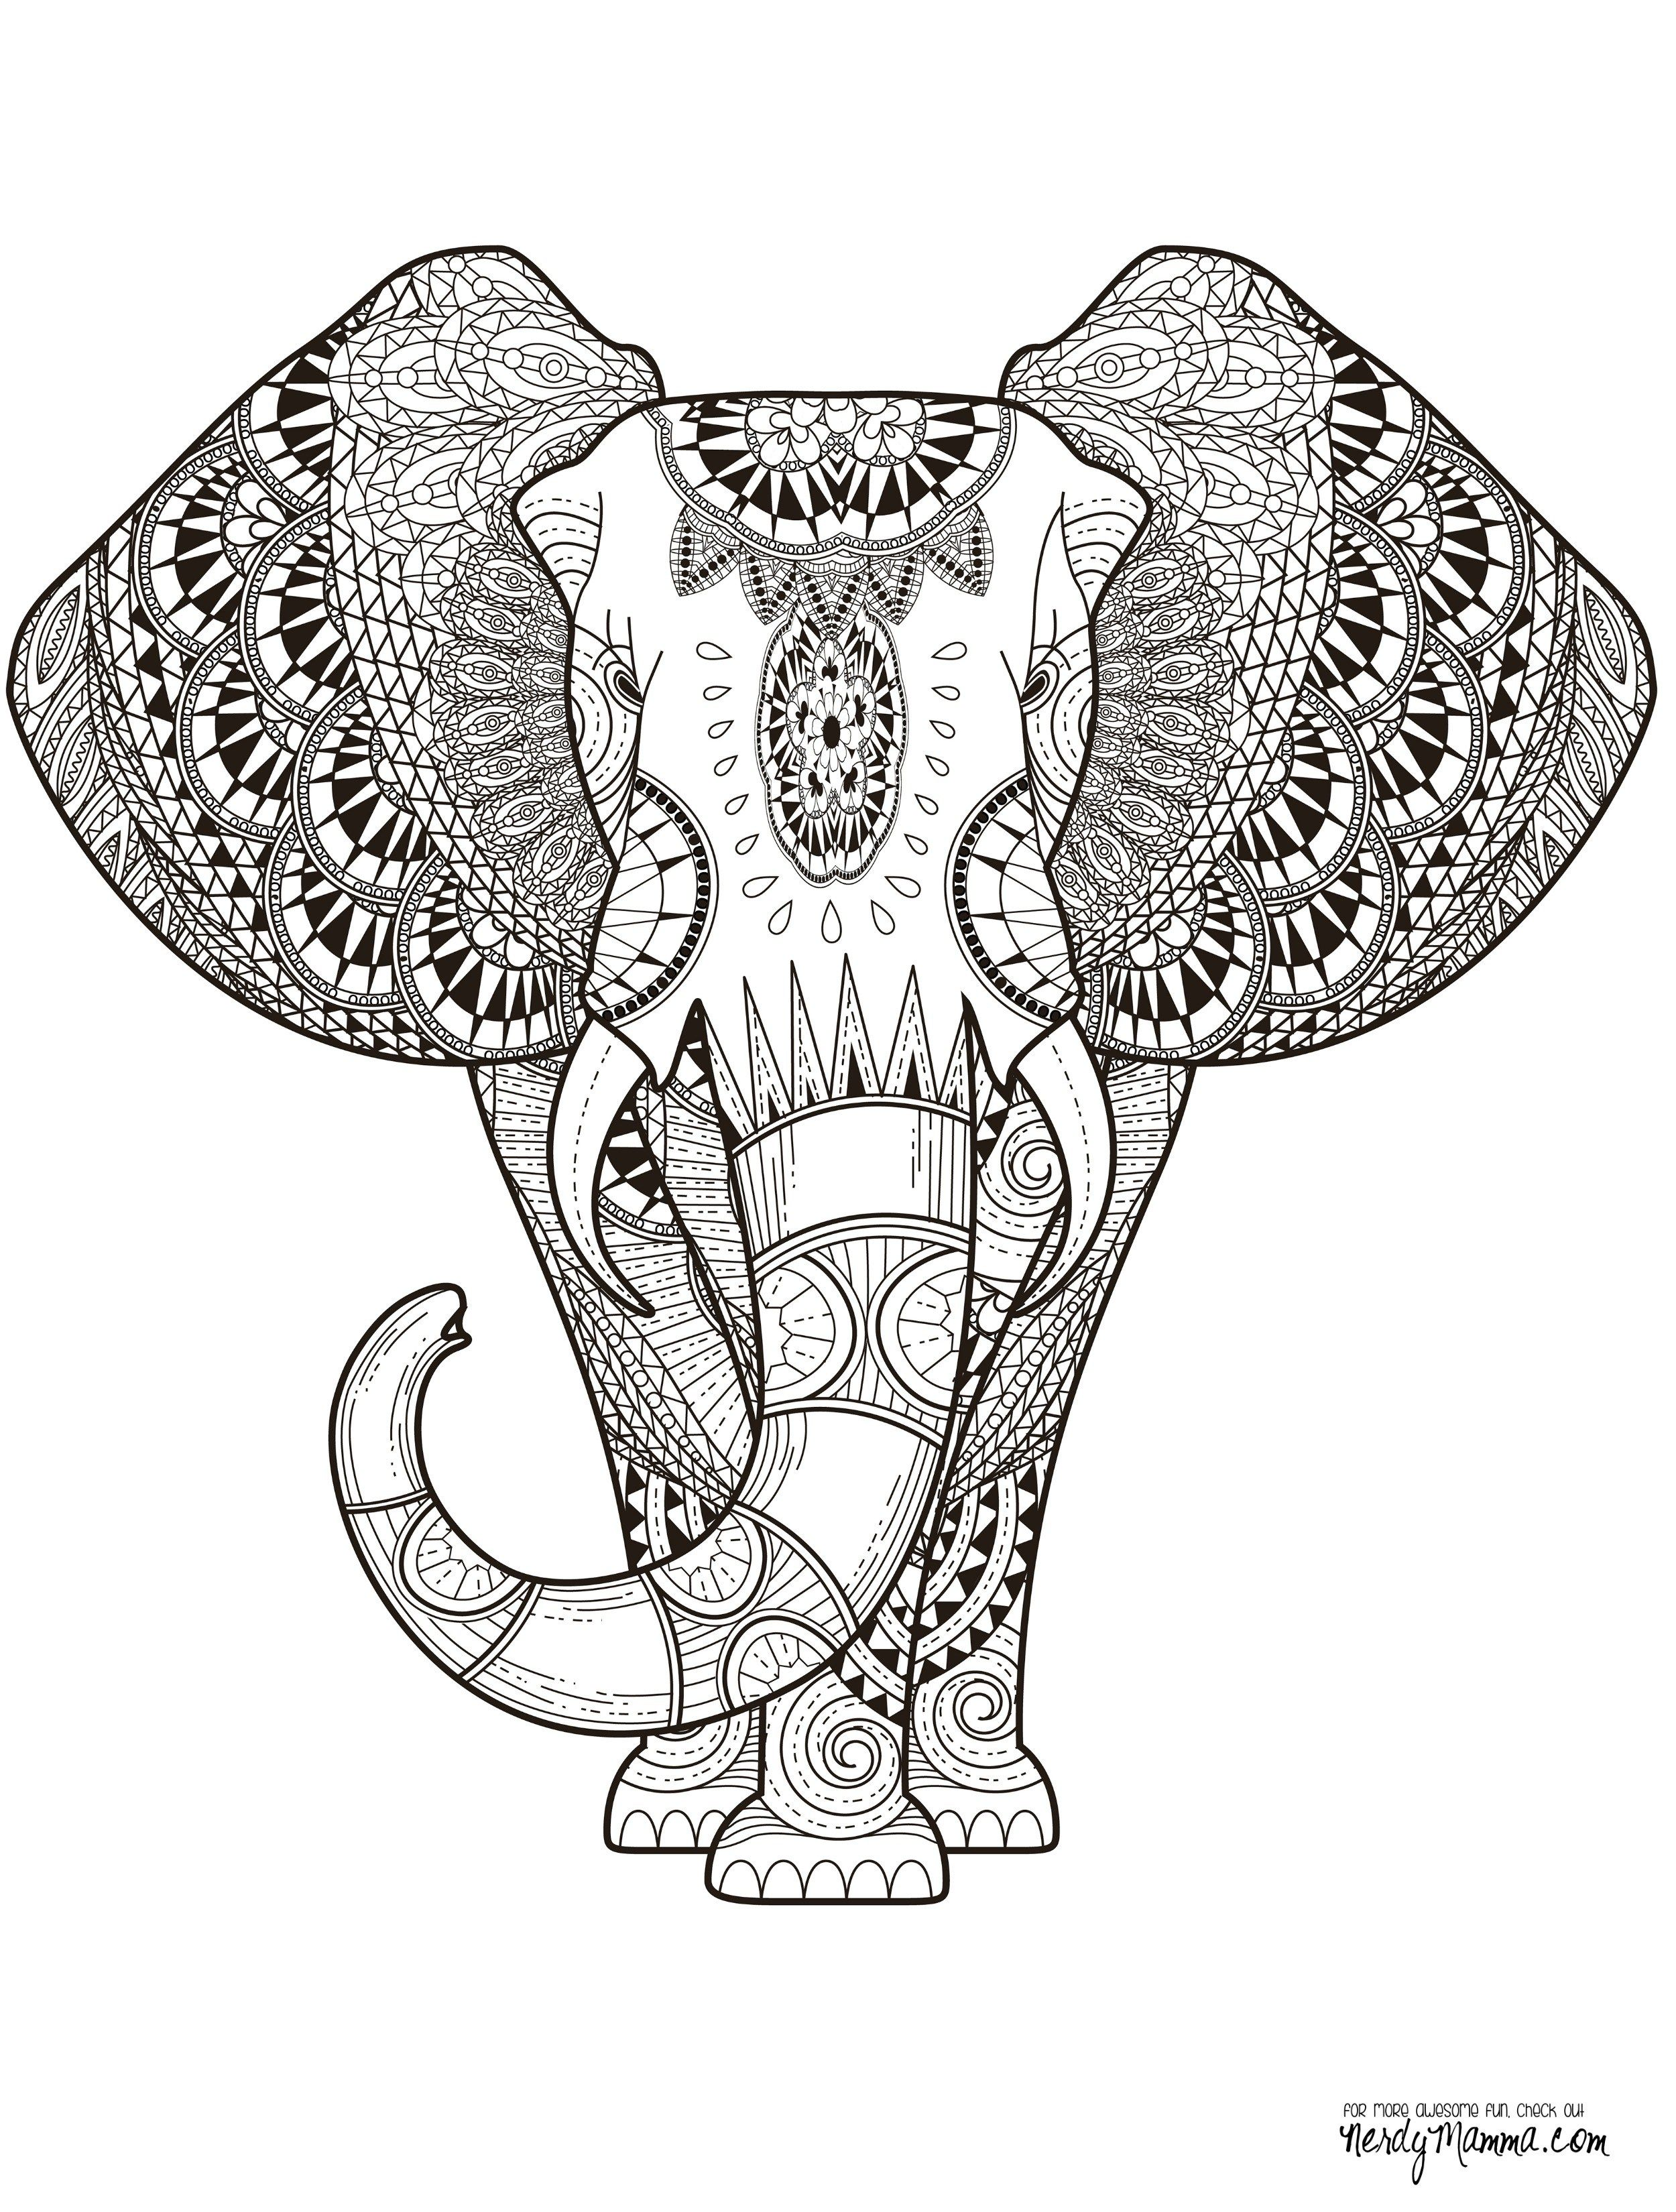 Long e coloring pages - 11 Free Printable Adult Coloring Pages